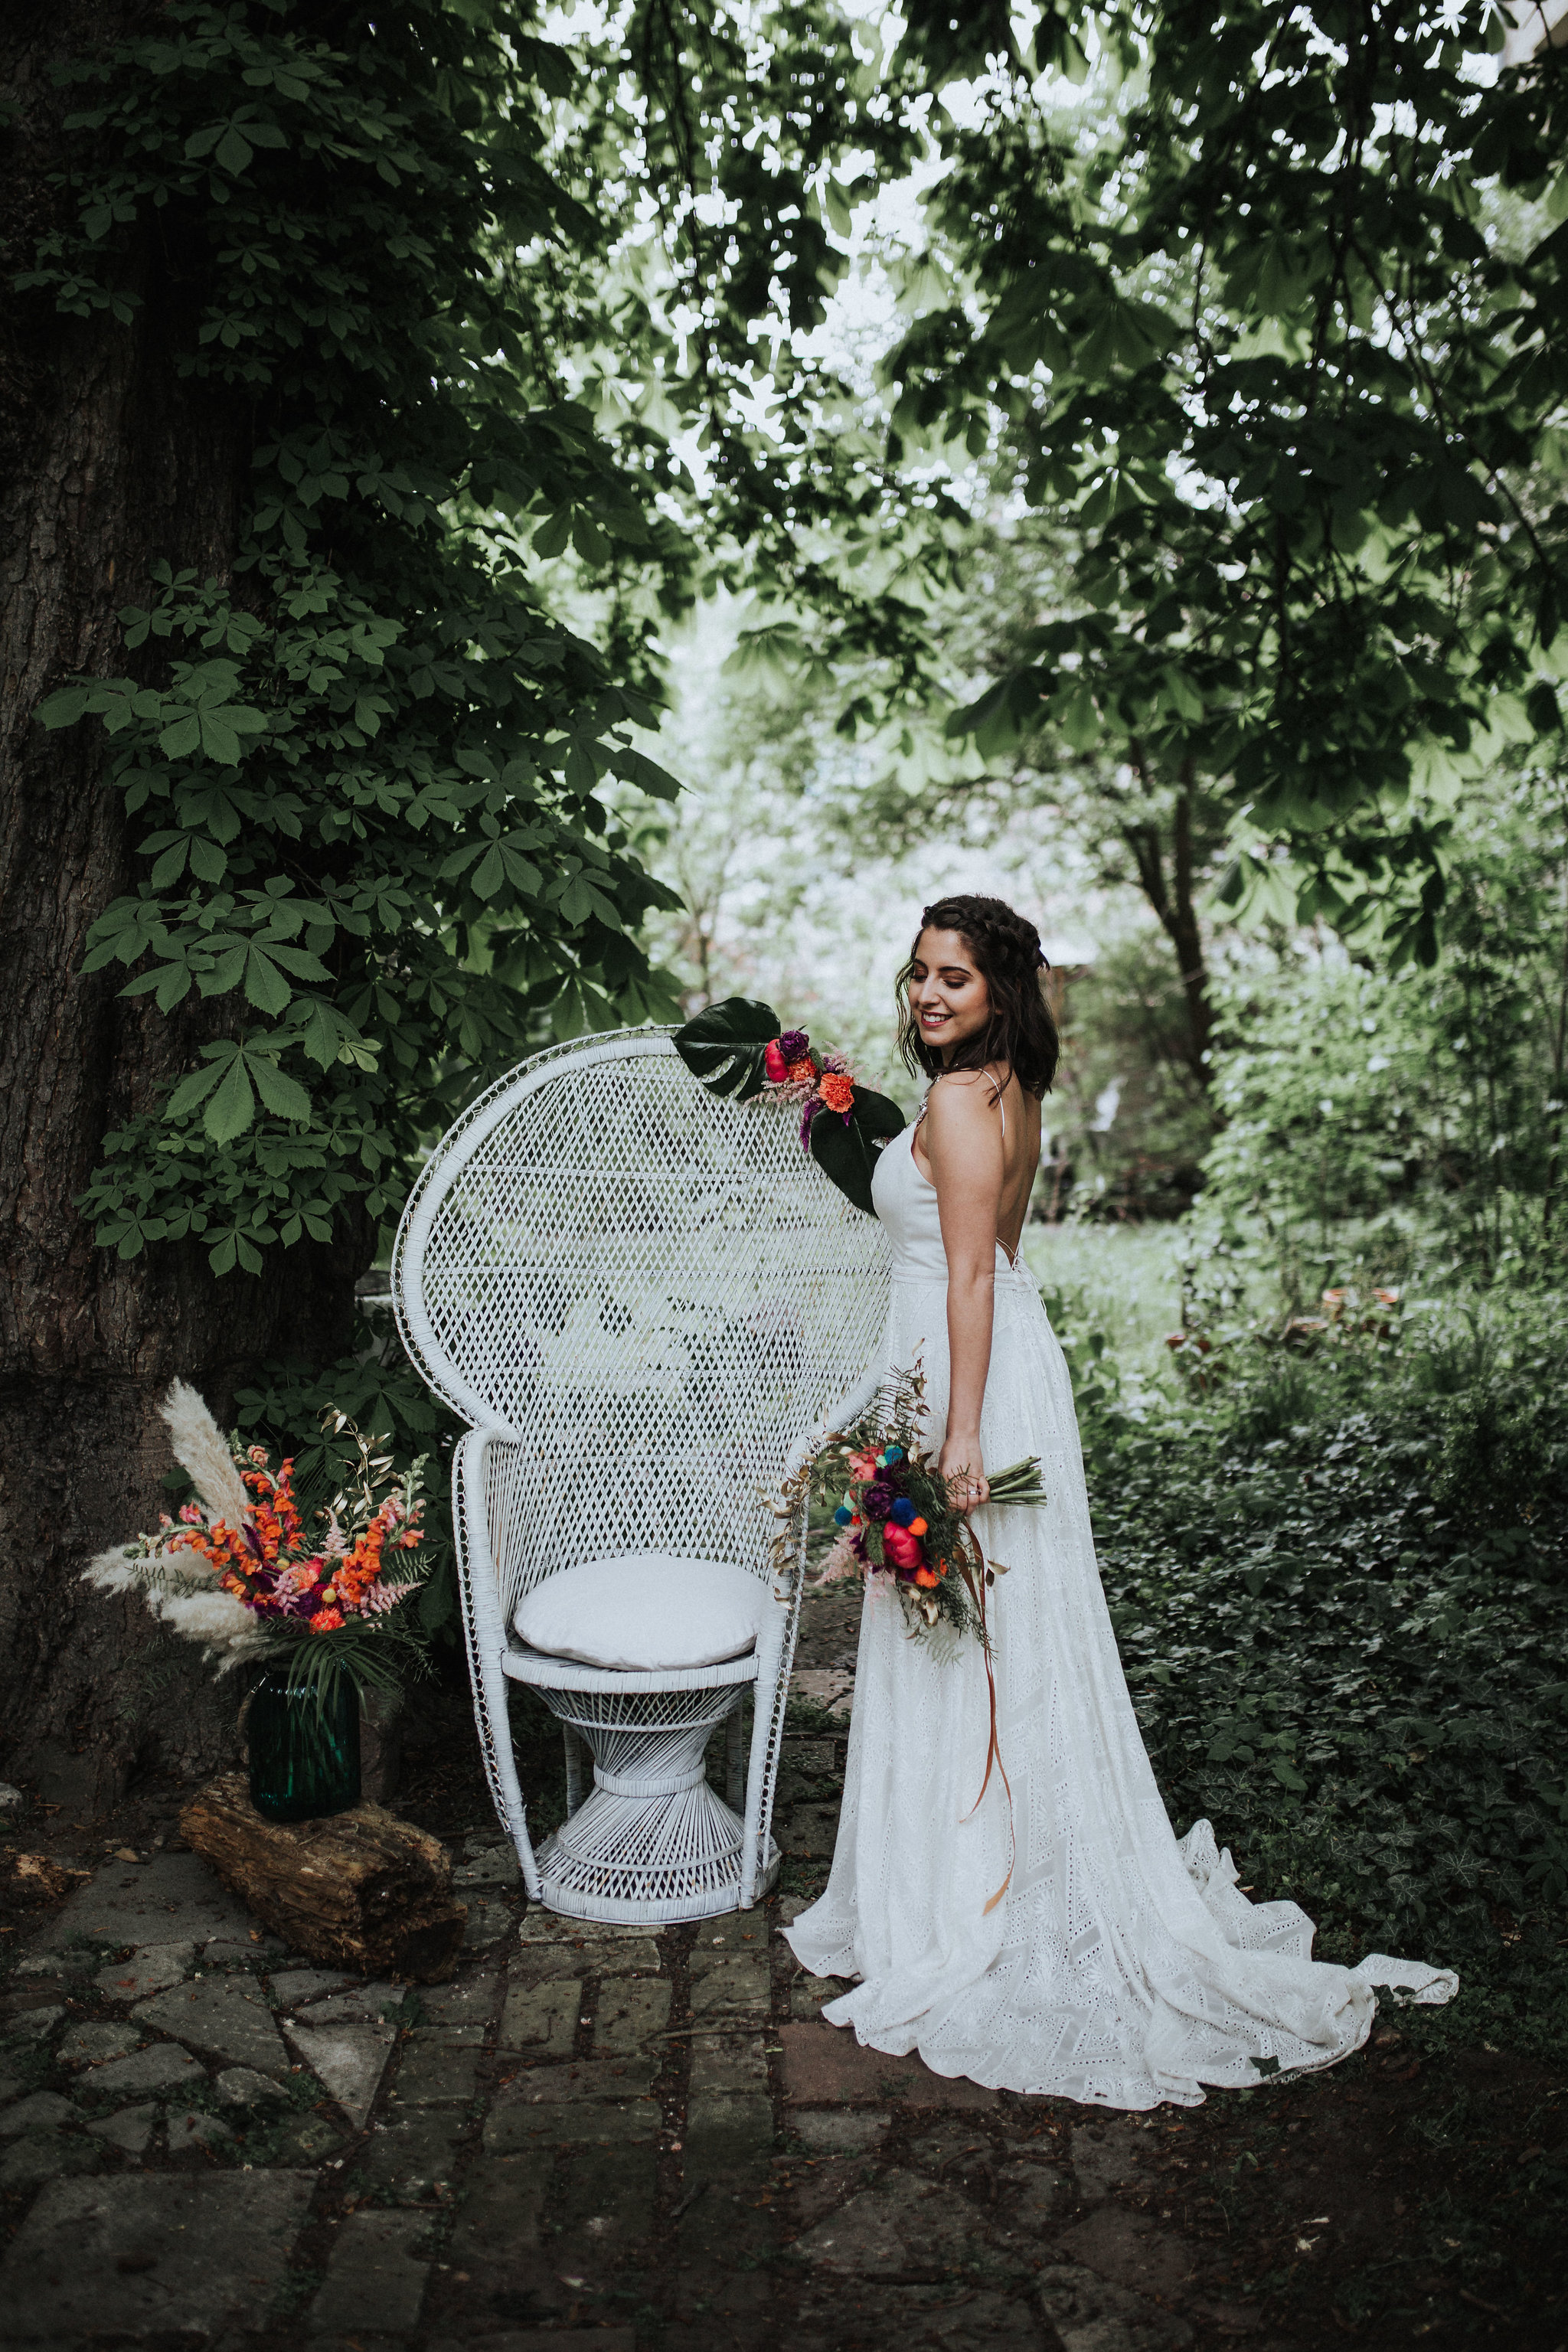 HoneymoonPictures_Styleshoot_Ethno-173